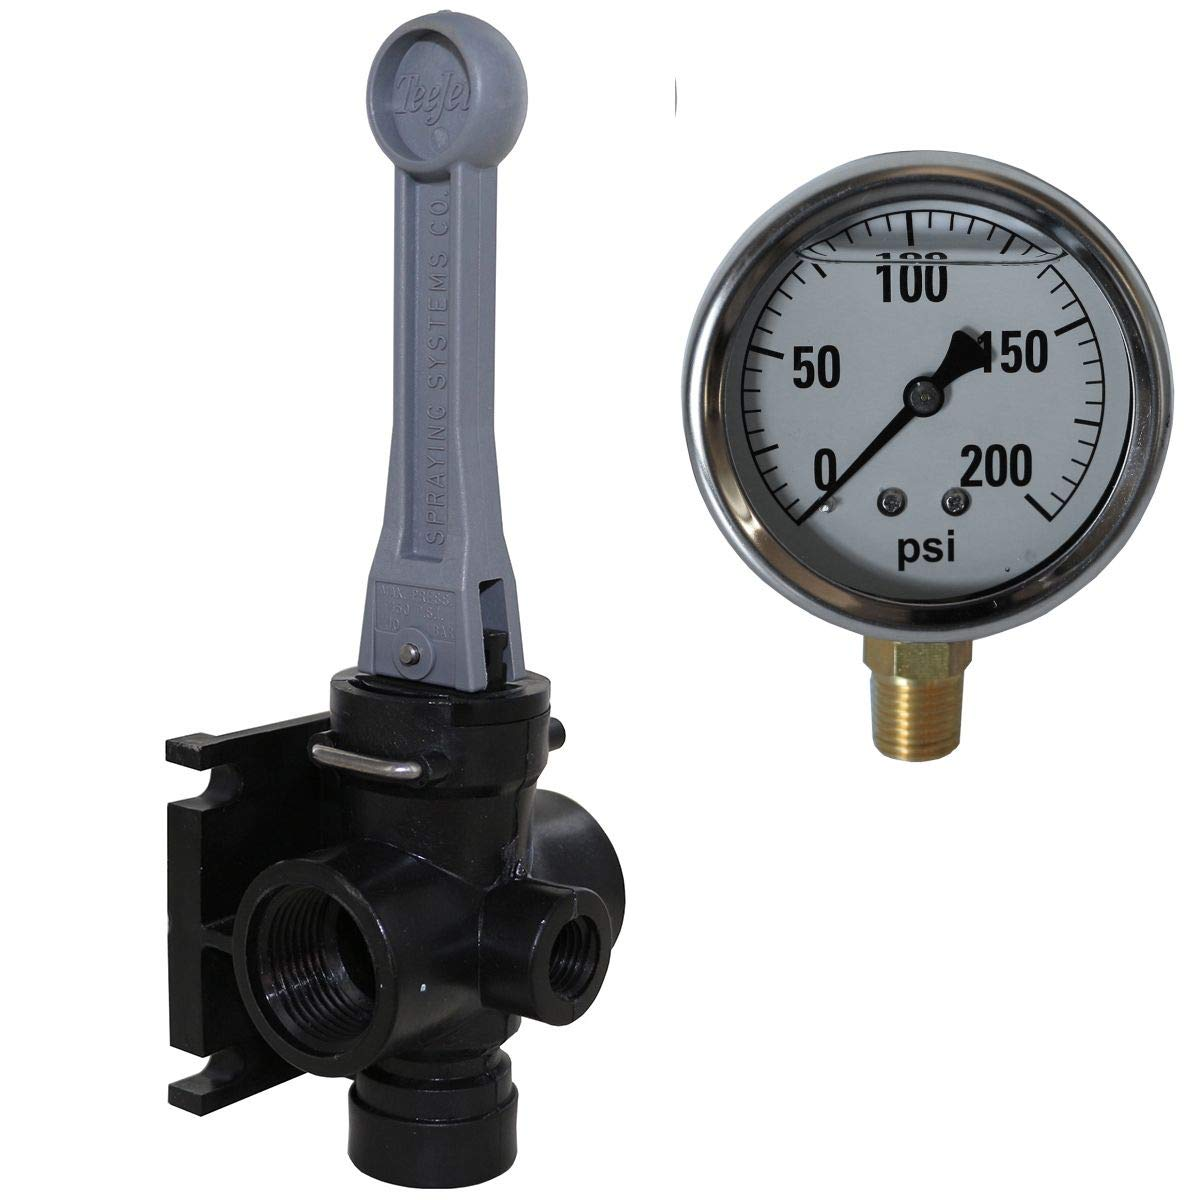 TeeJet AA6B DirectoValve Manual Control Valve with 200 PSI Pressure Gauge Bundle, 2 Items